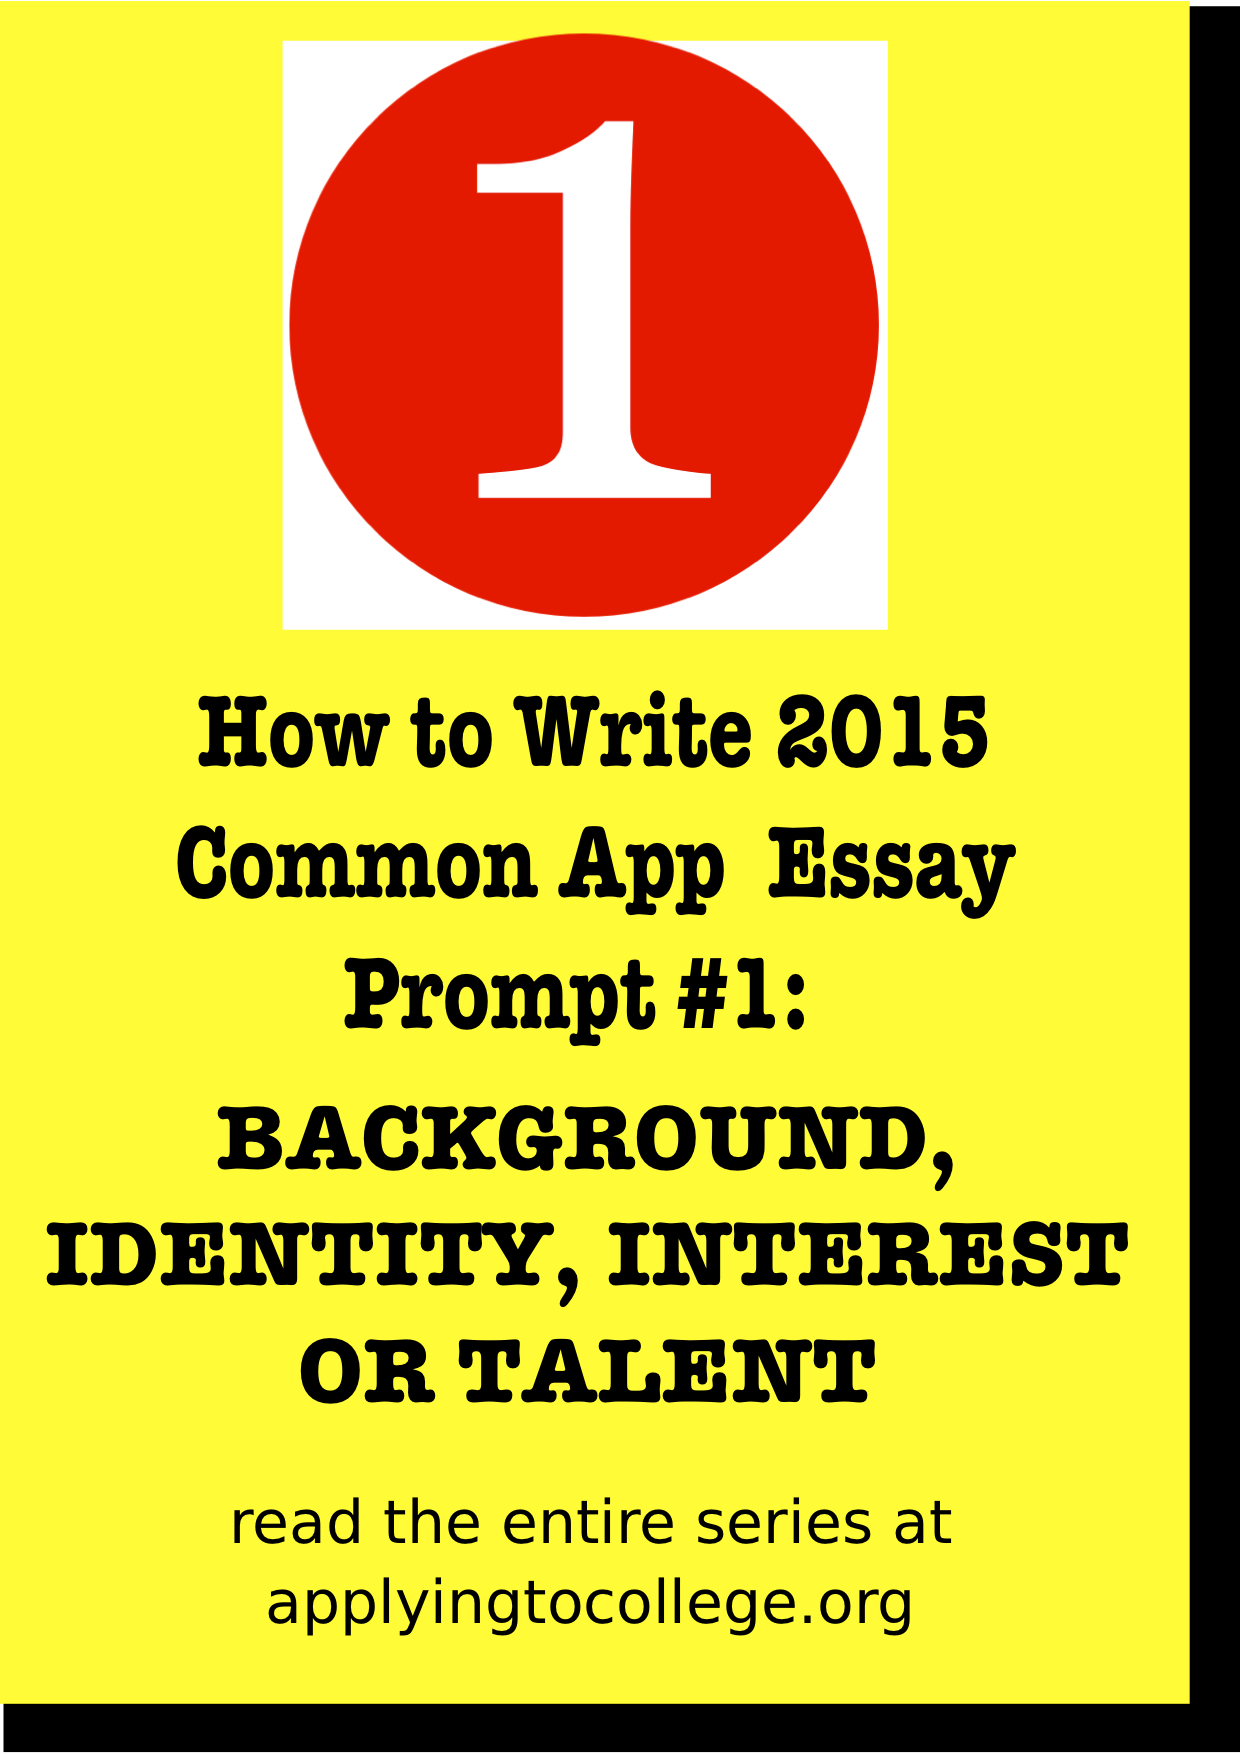 how to write 2015 common app background identity interest or talent essay. Resume Example. Resume CV Cover Letter